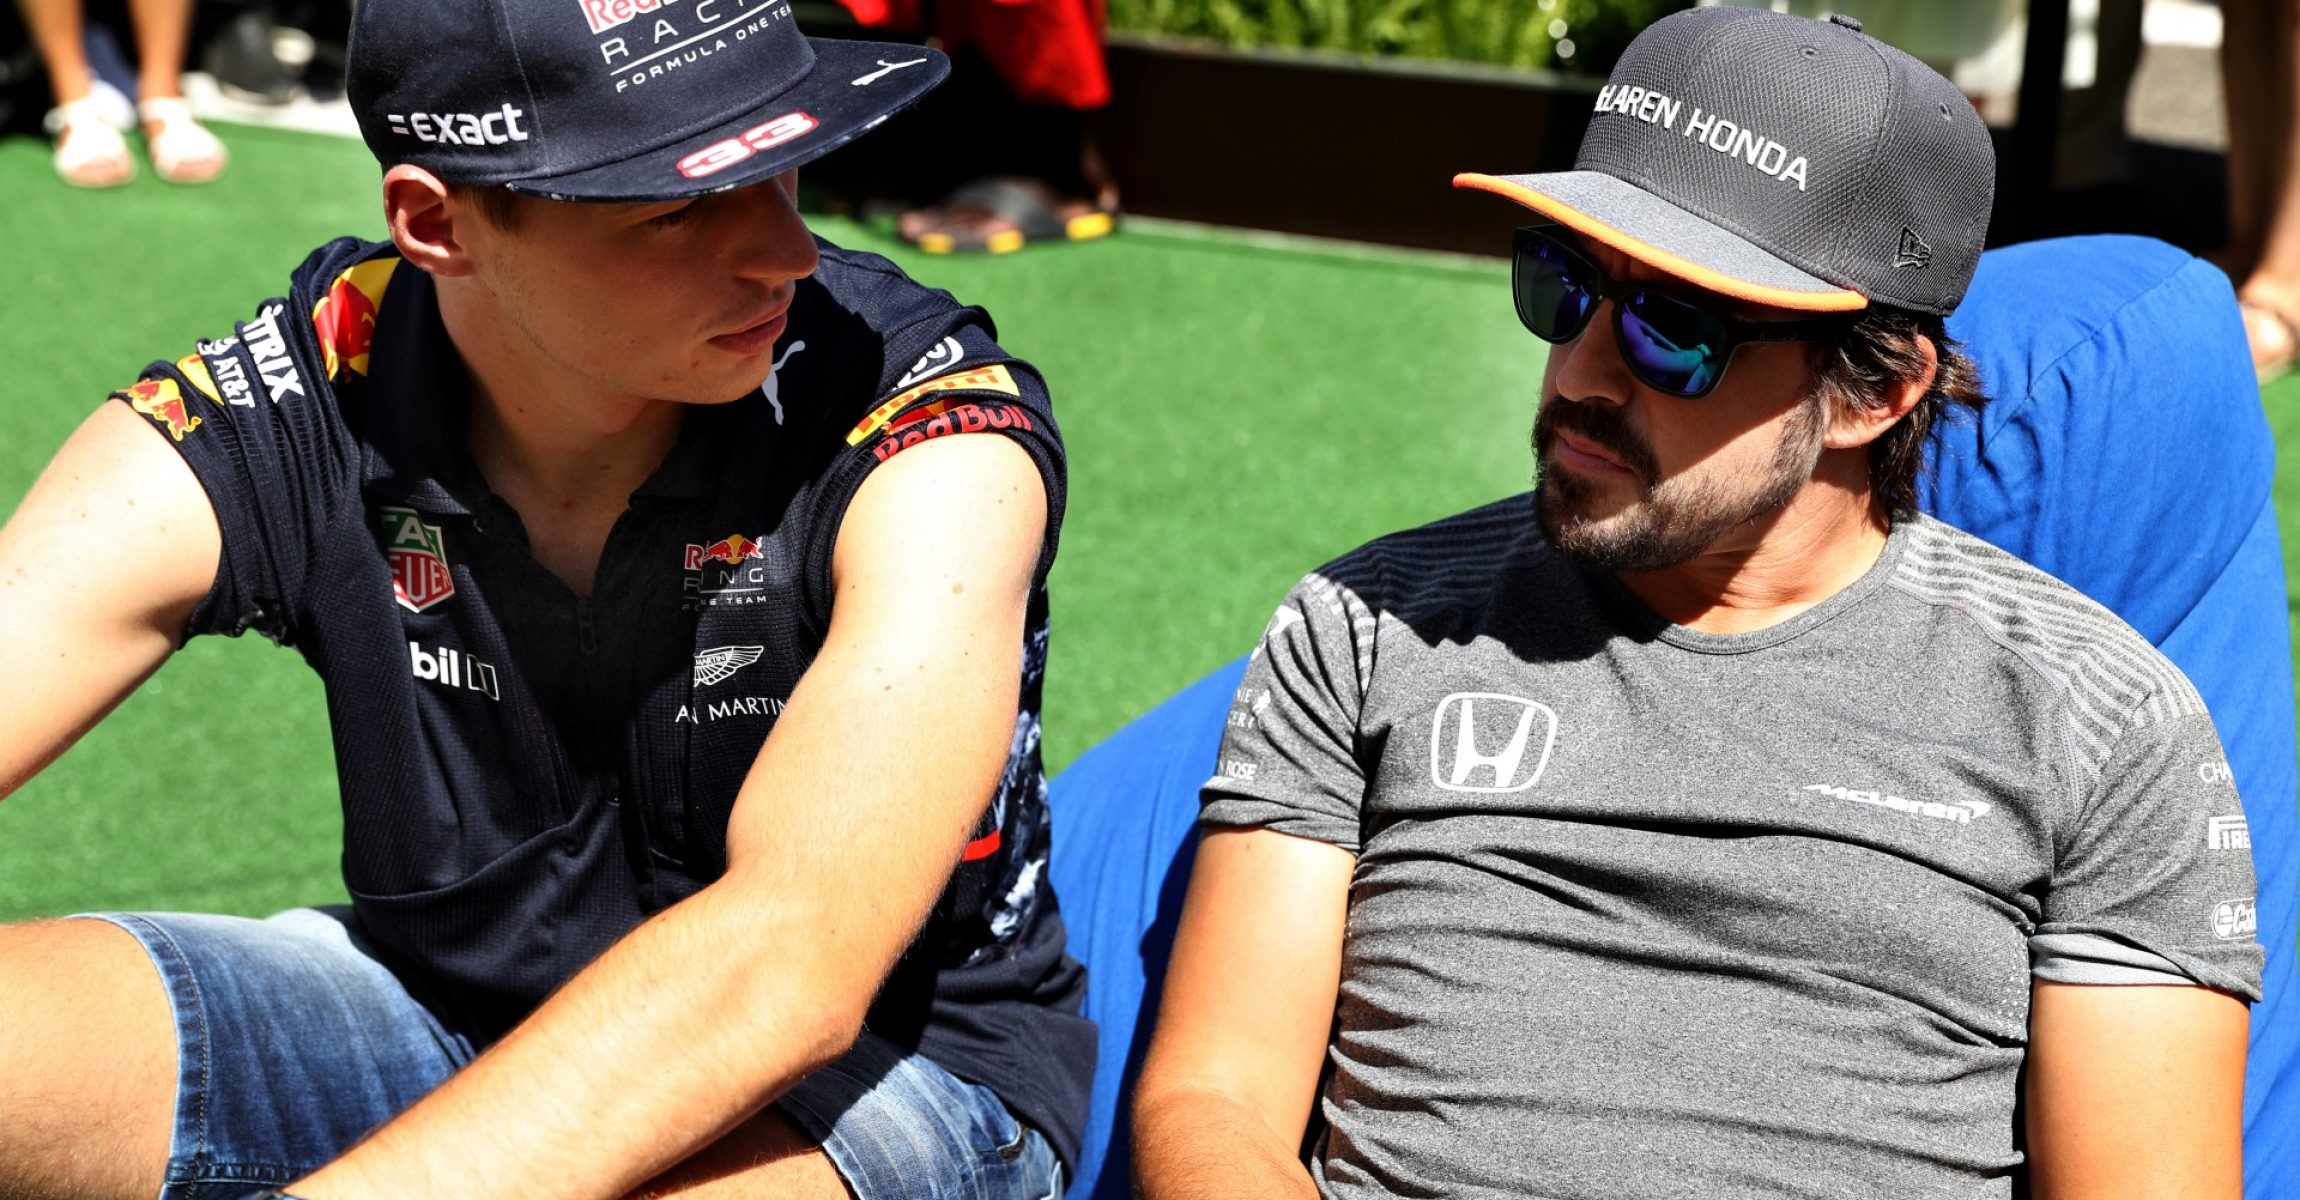 BUDAPEST, HUNGARY - JULY 30: Max Verstappen of Netherlands and Red Bull Racing and Fernando Alonso of Spain and McLaren Honda talk in the Paddock before the Formula One Grand Prix of Hungary at Hungaroring on July 30, 2017 in Budapest, Hungary. (Photo by Mark Thompson/Getty Images)